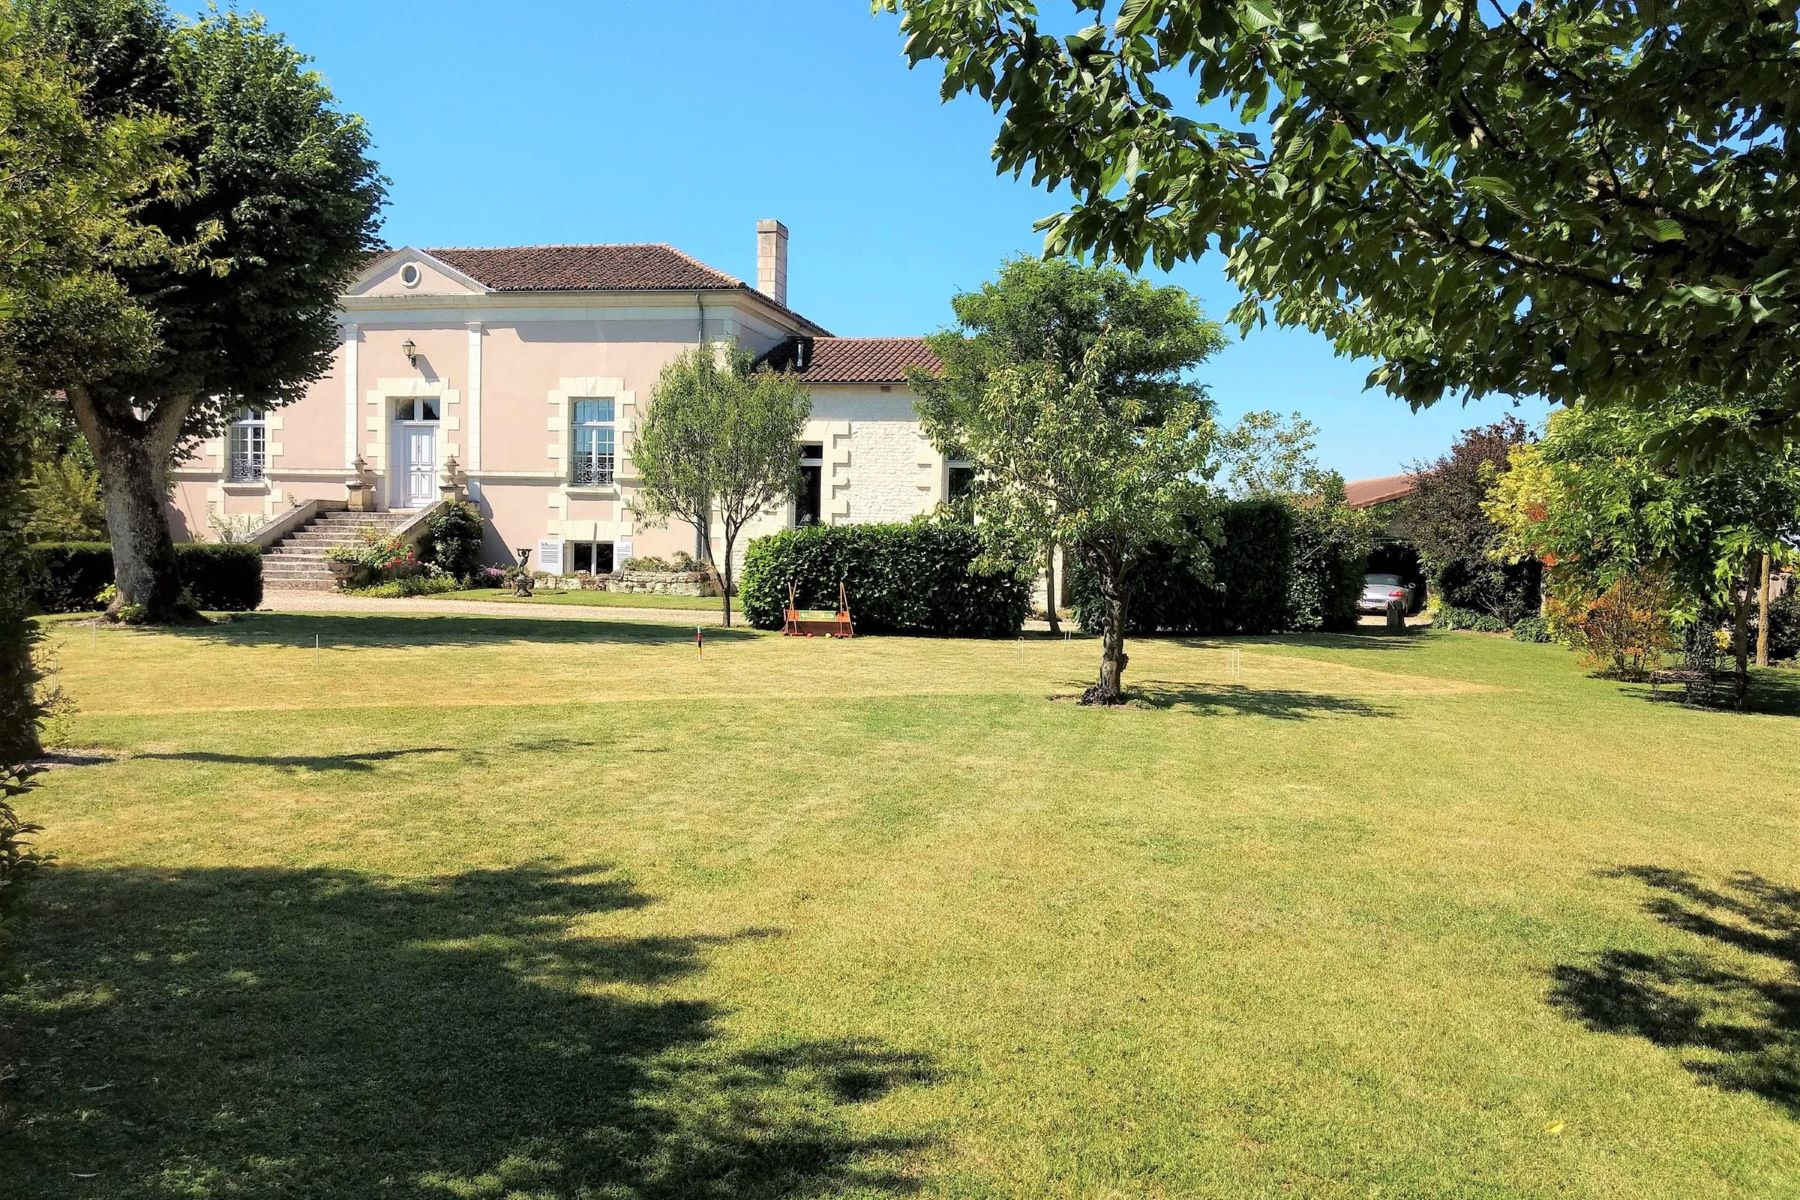 Single Family Homes for Active at Mid 19th century stone country house Richelieu, Centre 37120 France